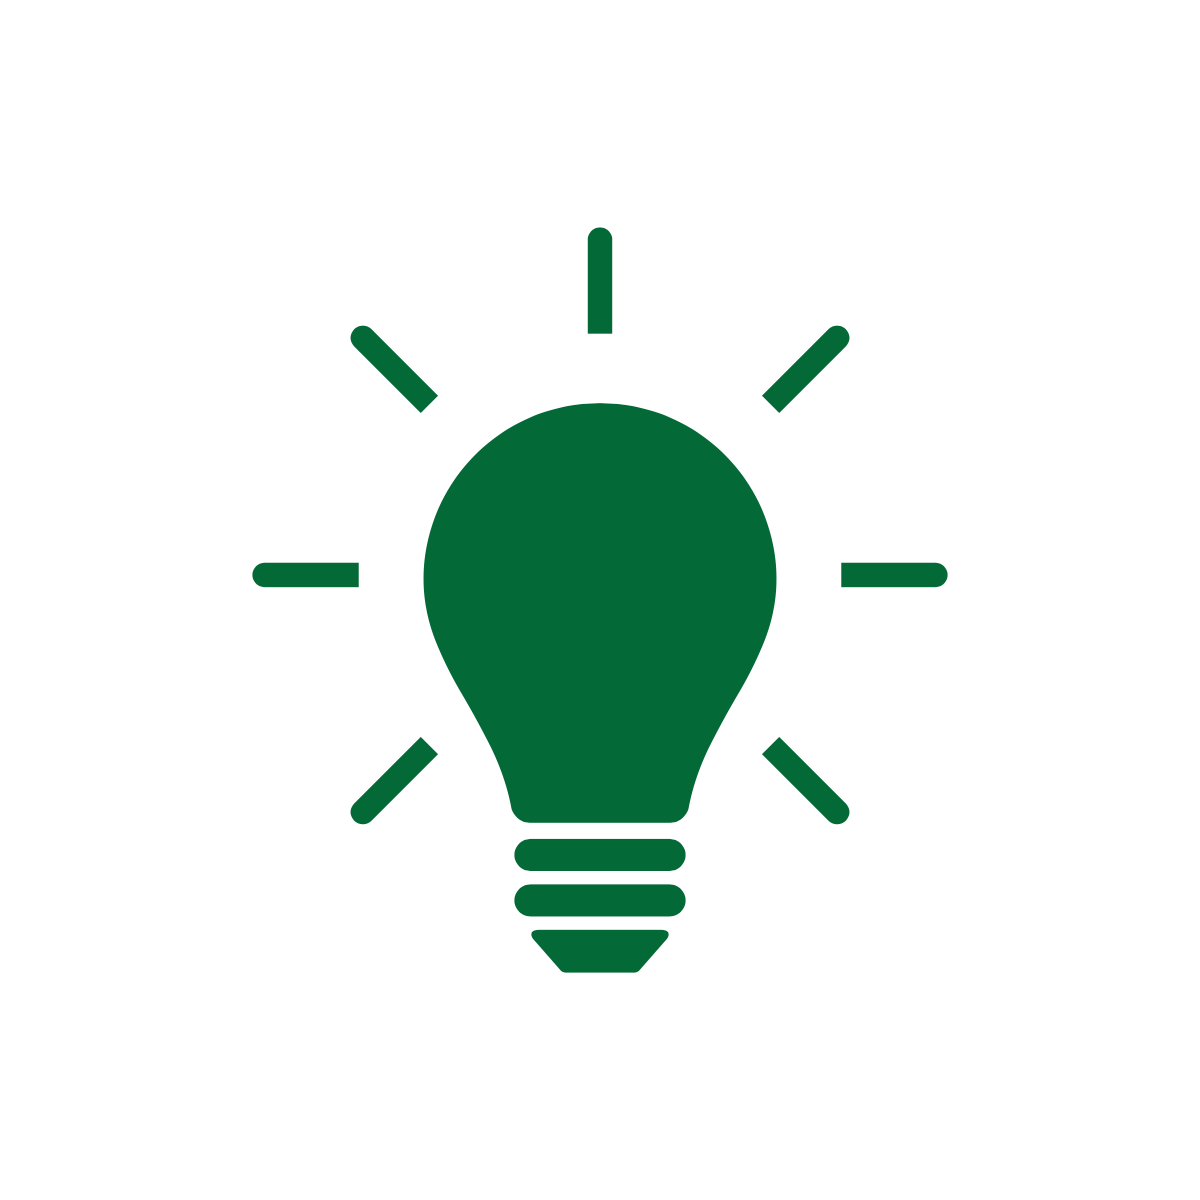 Green lightbulb icon from Noun Project